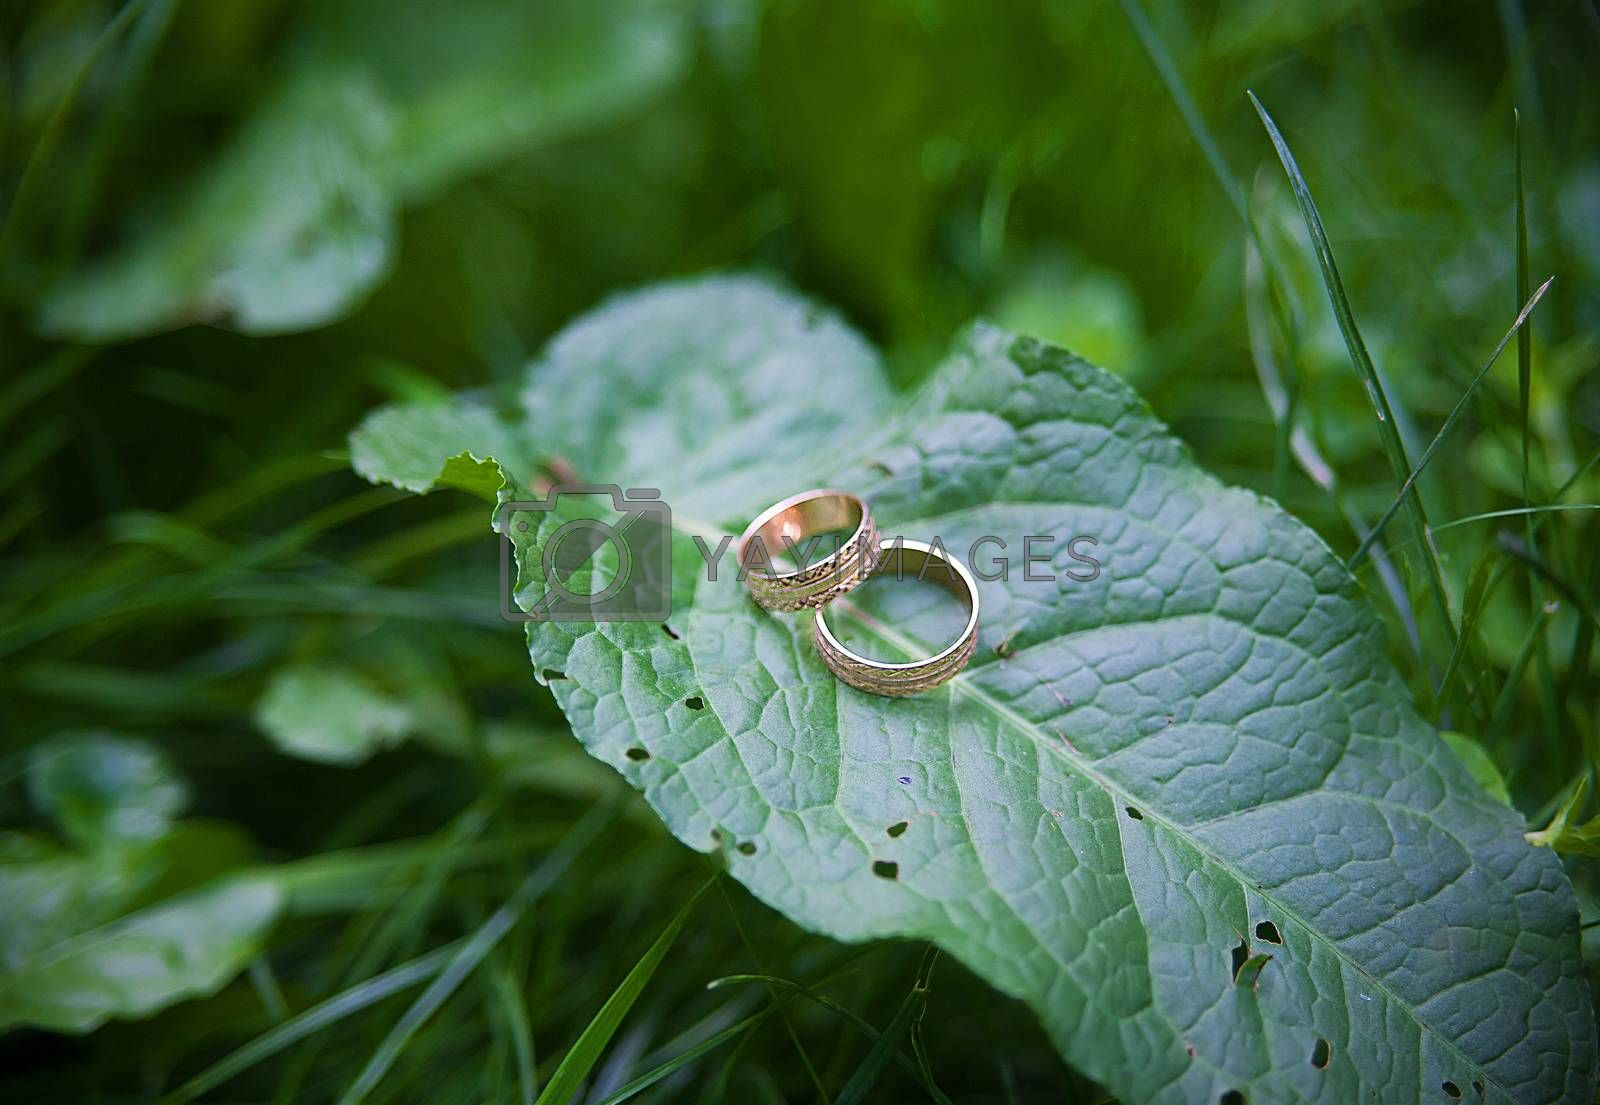 Royalty free image of Two Golden wedding rings lie on leaves plant. by sfinks